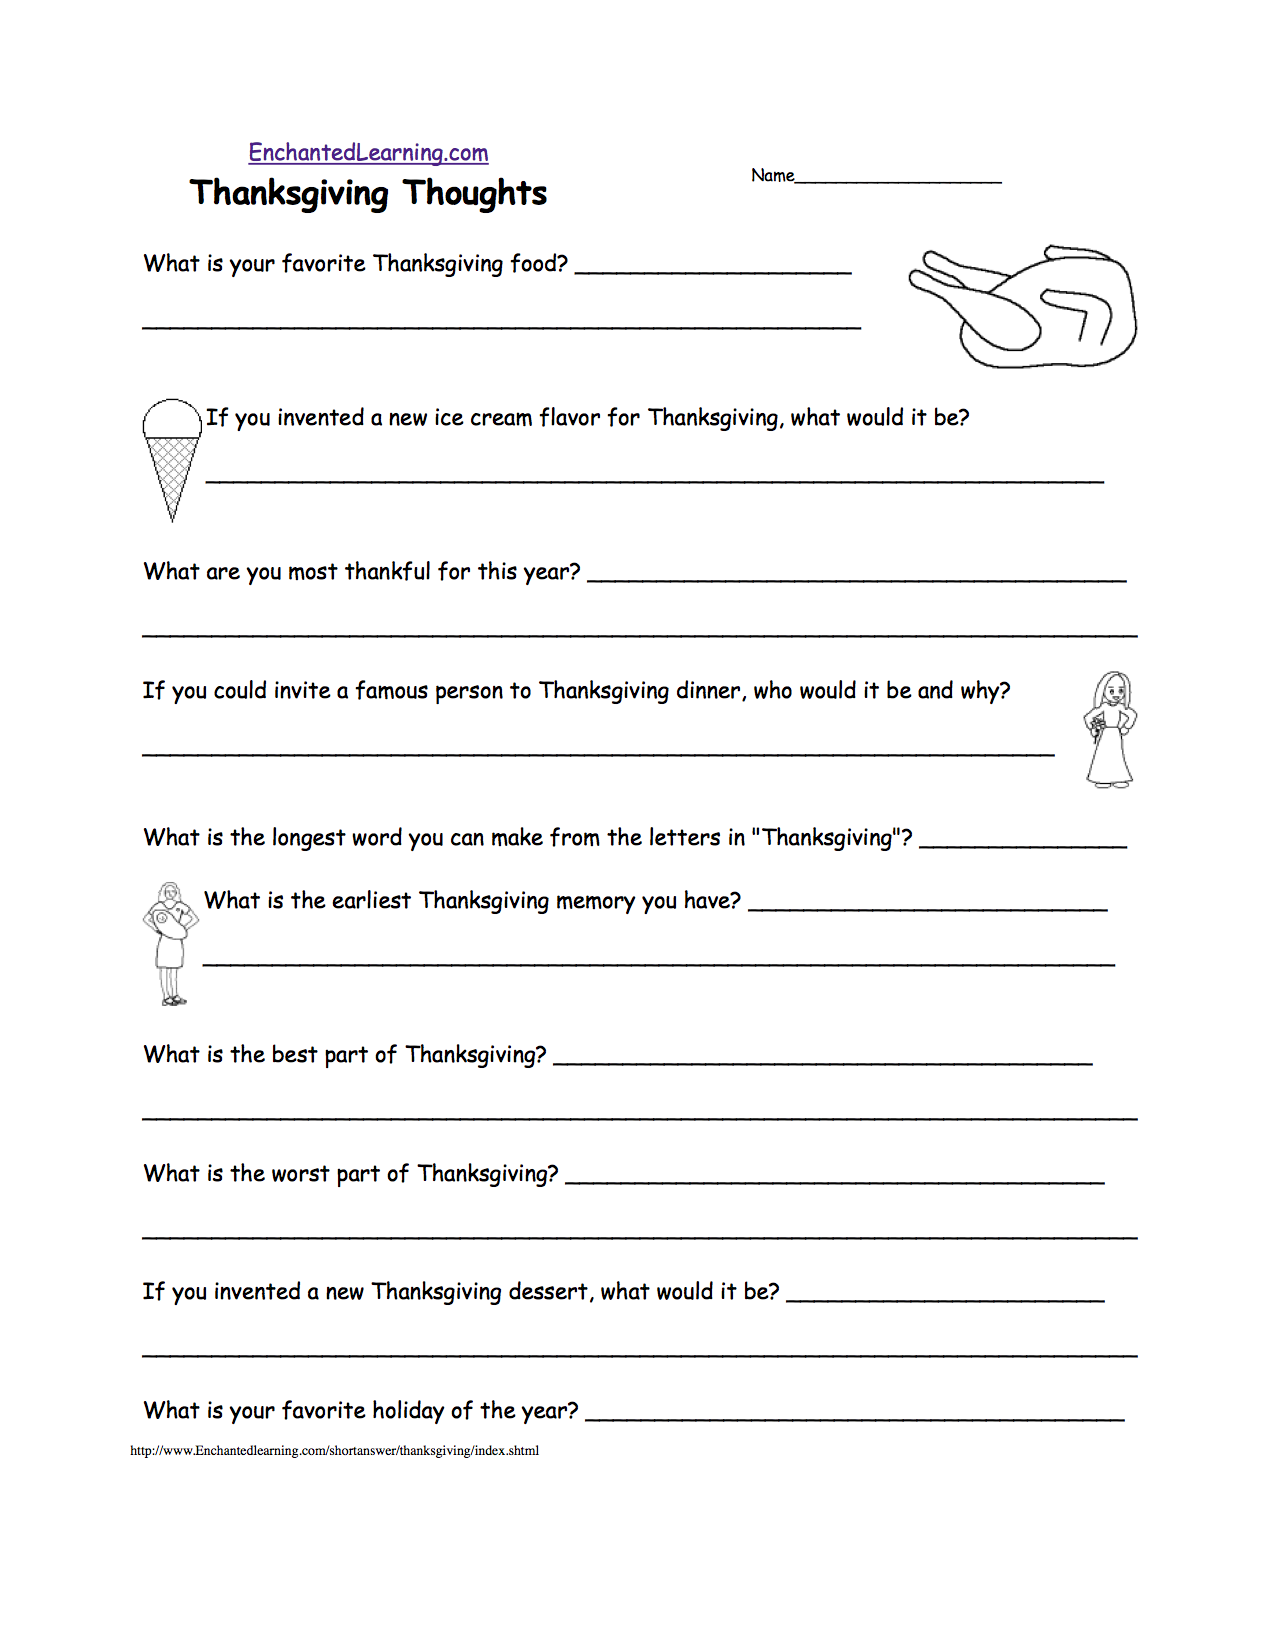 worksheet Fun Thanksgiving Worksheets thanksgiving crafts worksheets and activities thanksgiving